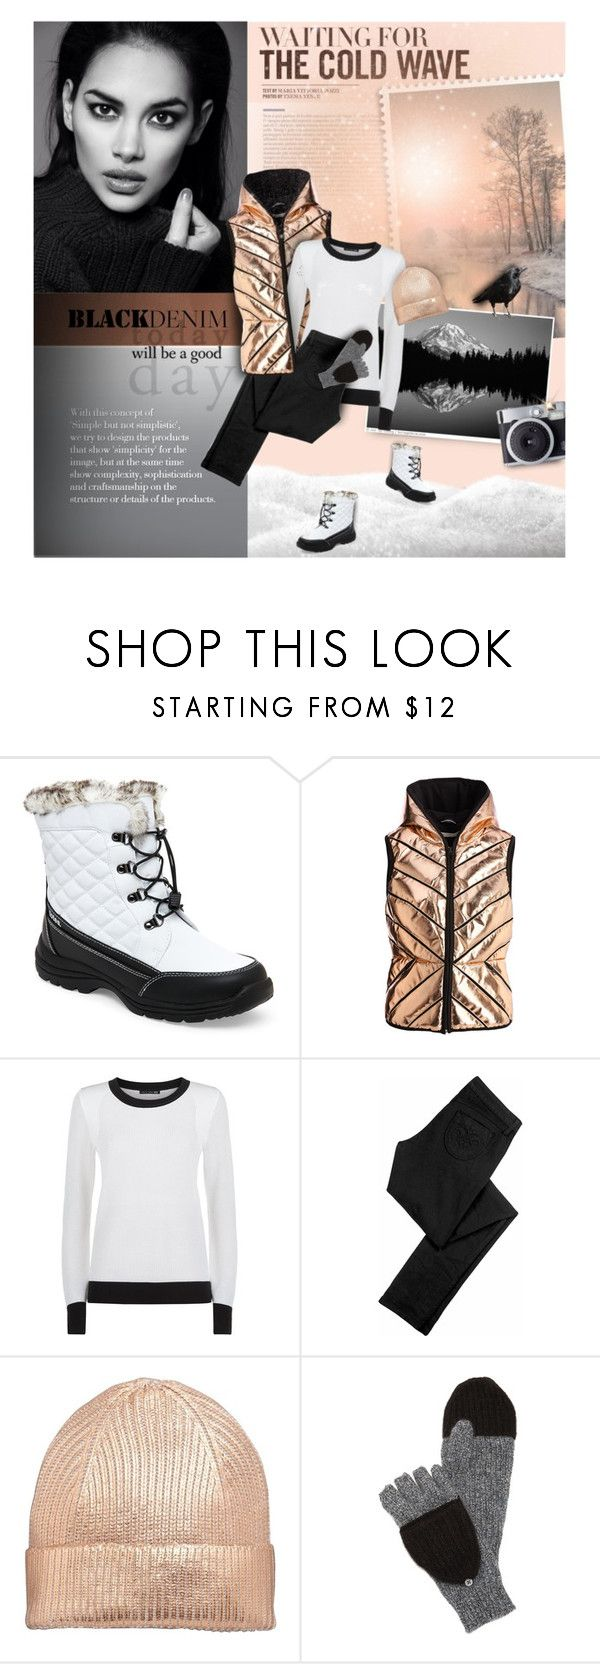 """""""Apricot winter sunrise"""" by kseniz13 ❤ liked on Polyvore featuring Totes, Blanc Noir, rag & bone, Siwy, White + Warren, Winter, Boots, Sweater, nature and vest"""